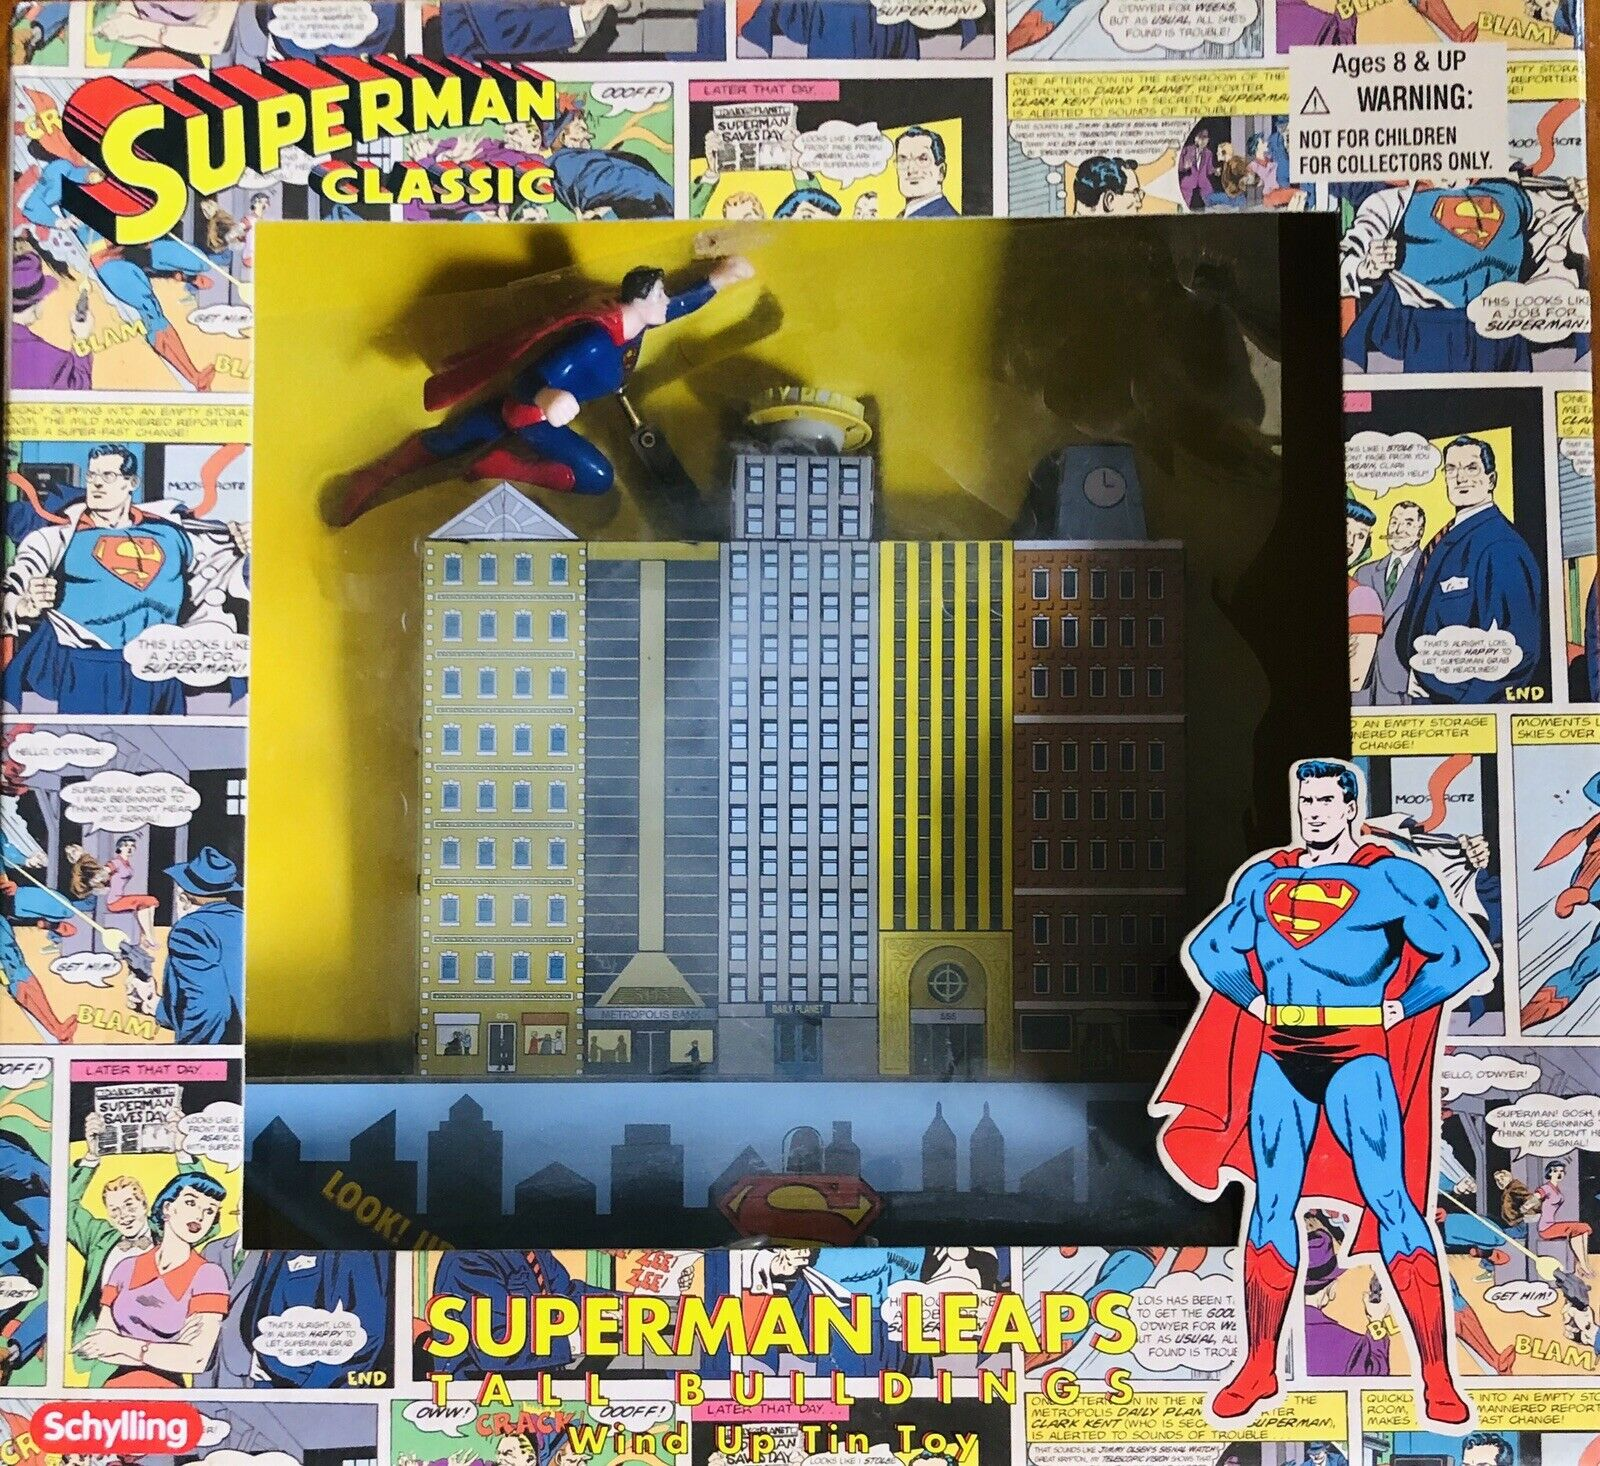 SCHYLLNG SUPERMAN CLASSIC LEAPS TALL BUILDING Spielzeug NEW IN BOX